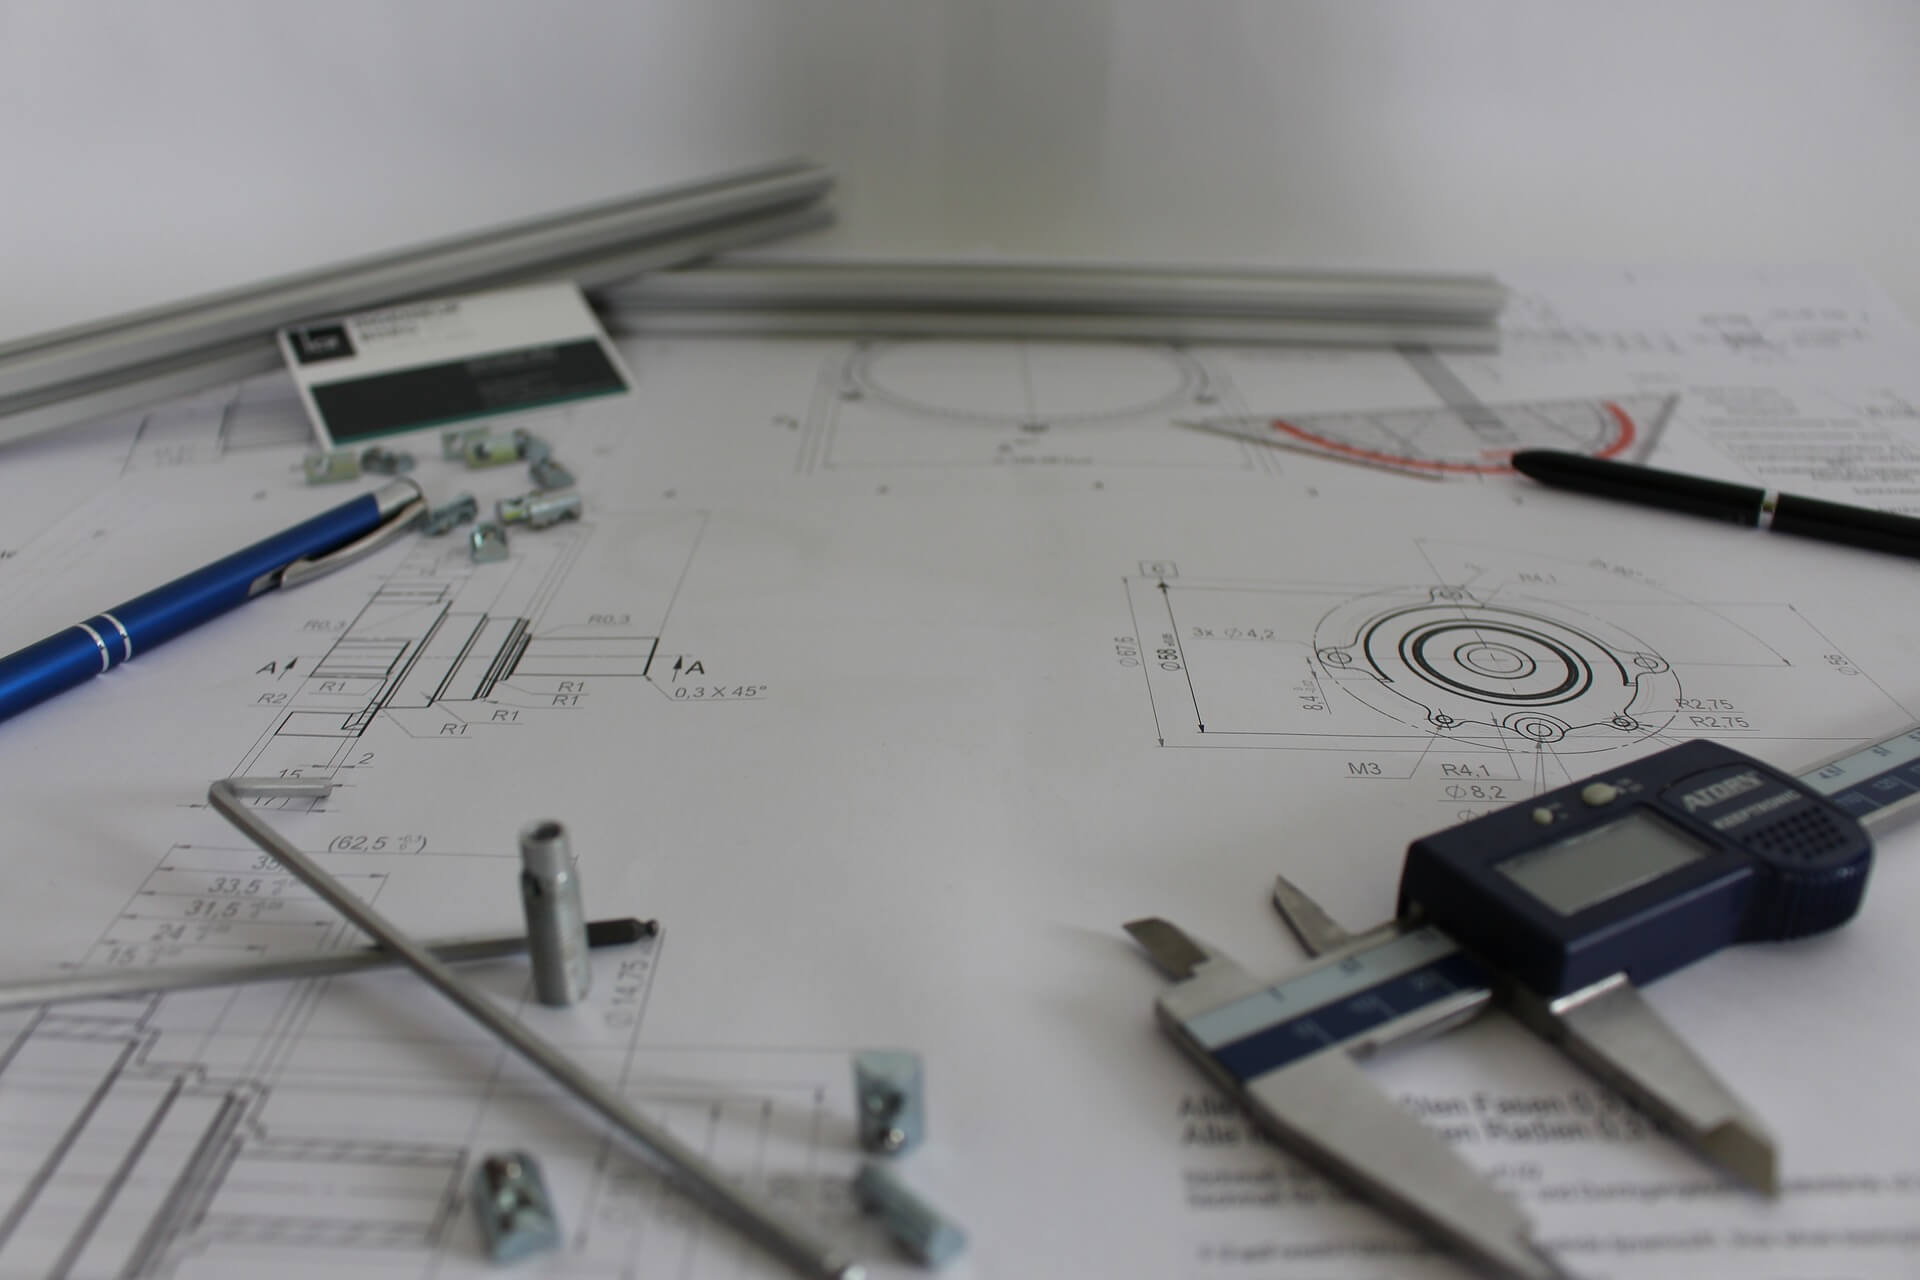 Engineer Drawings and Tools